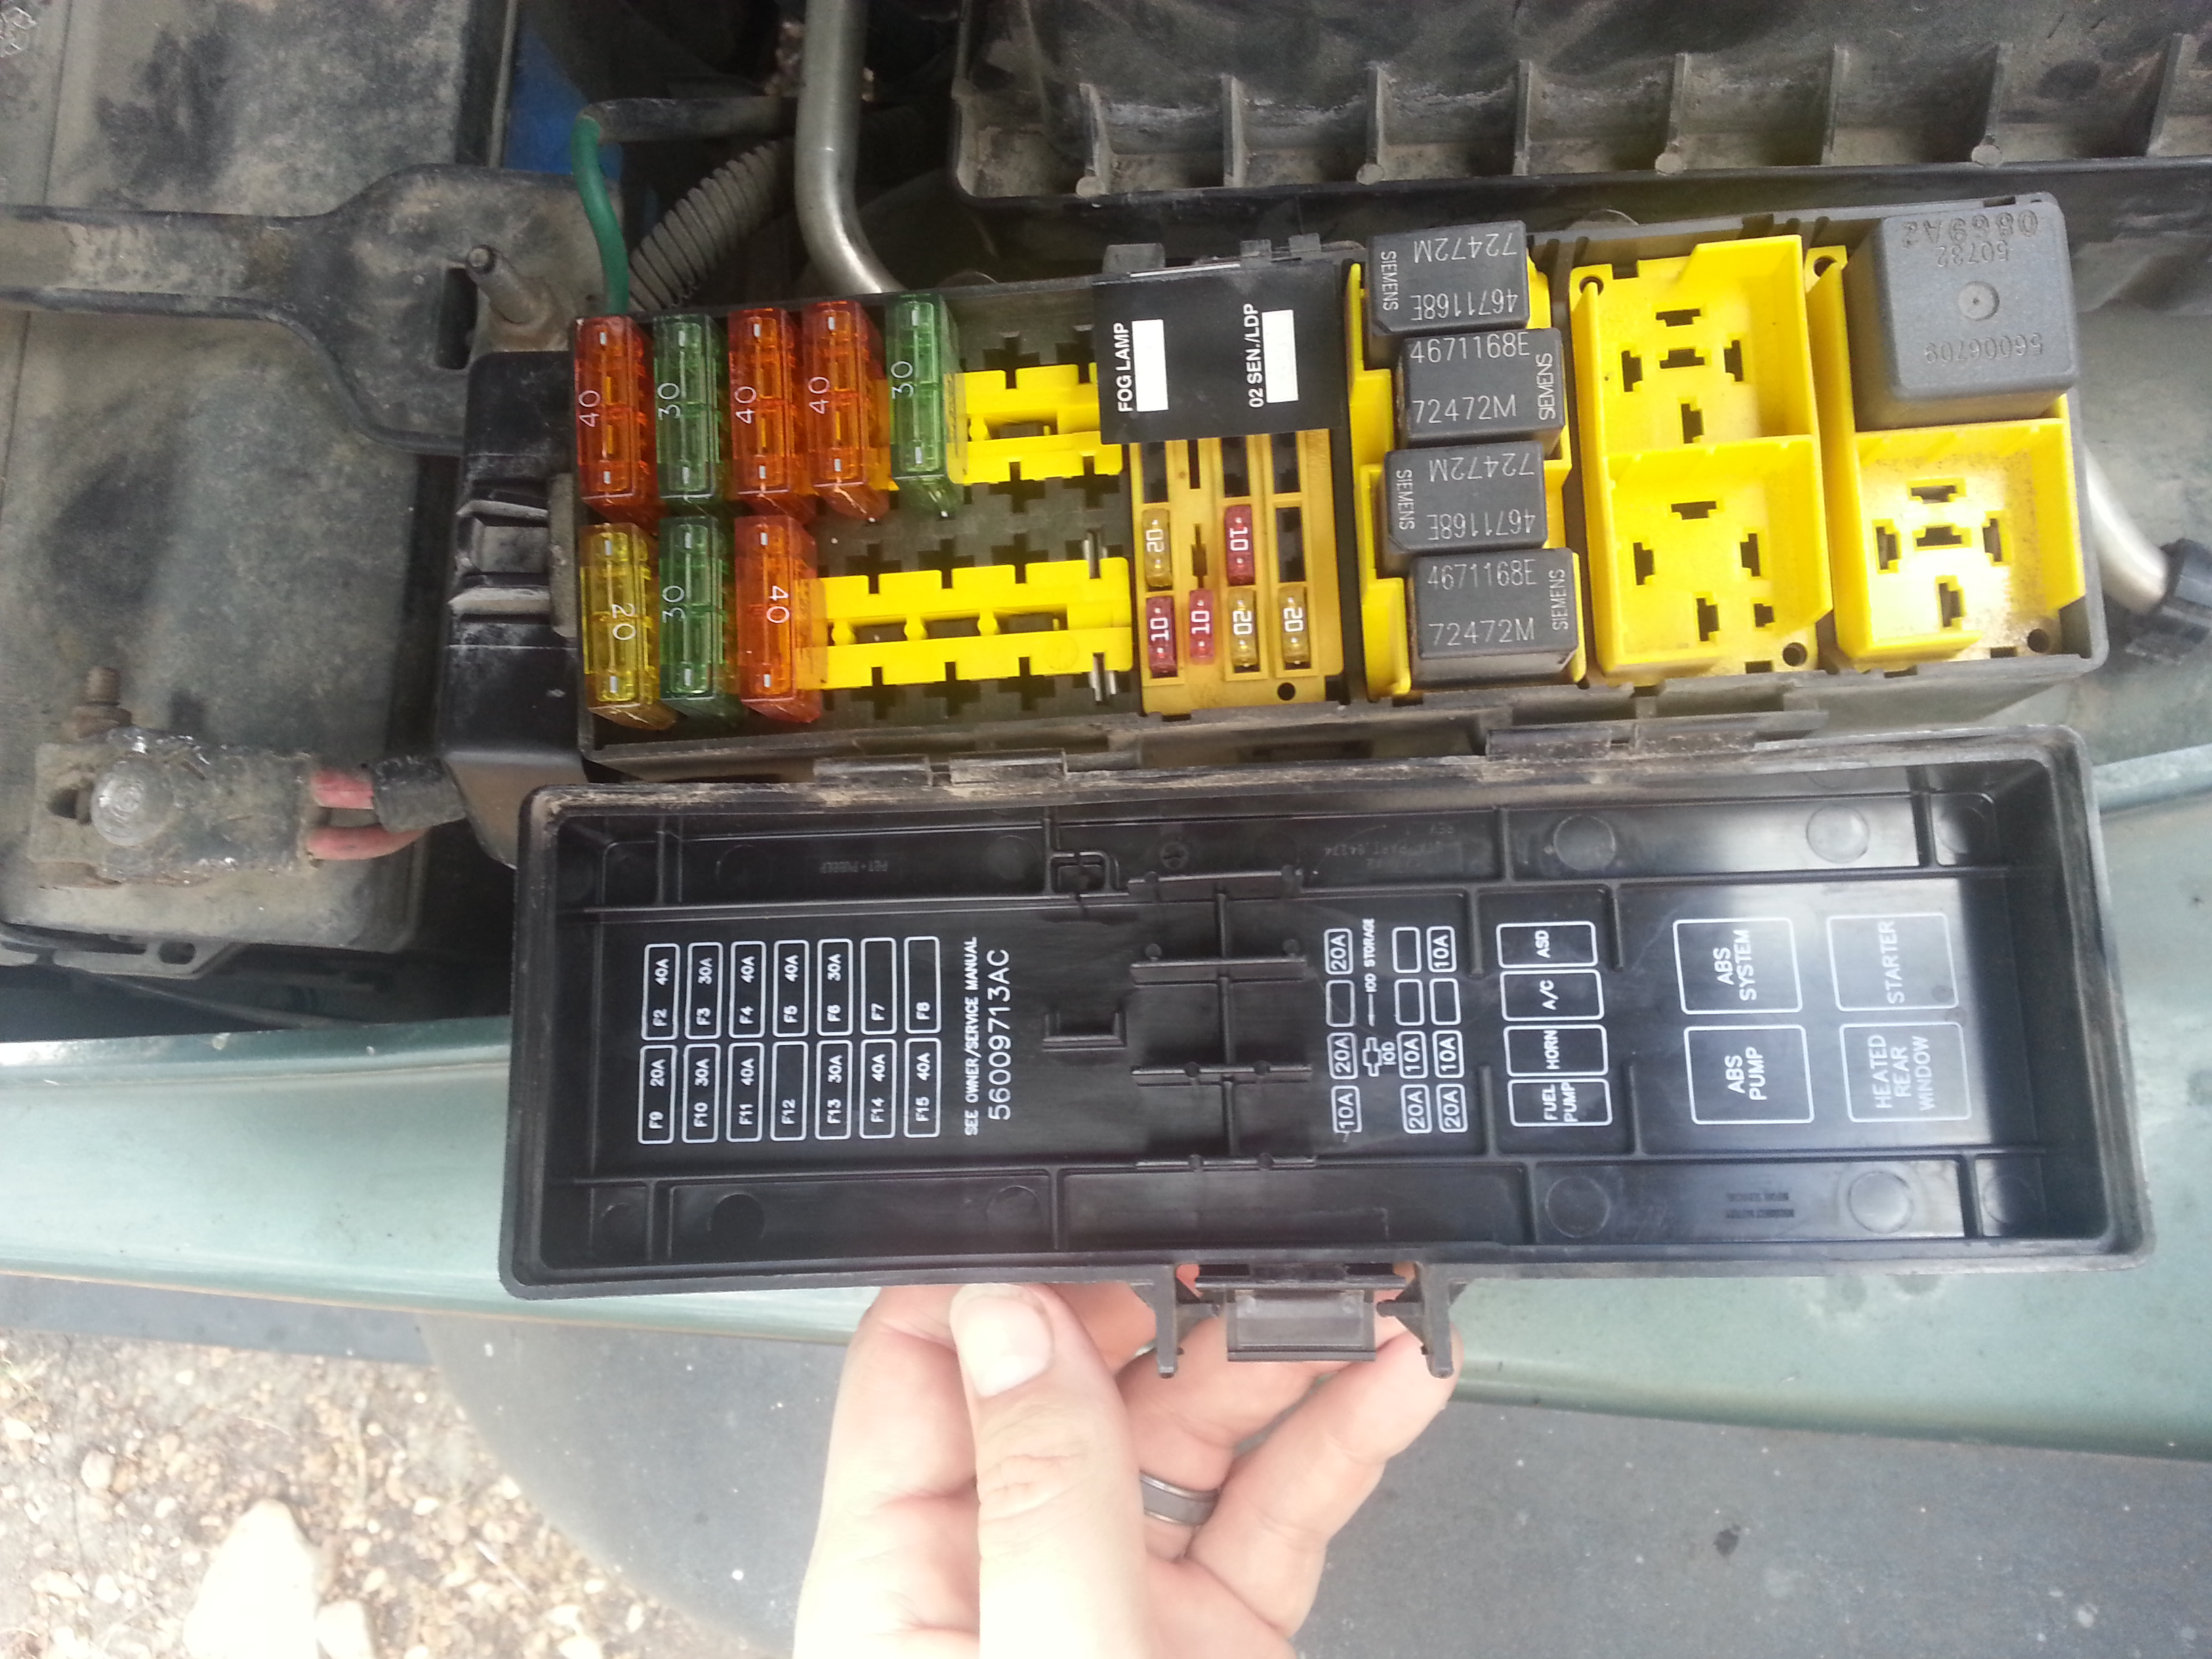 meyer plow self wiring diagram jeep jk fuse box jeep liberty fuse box wiring diagram odicis meyer plow light wiring diagram ford